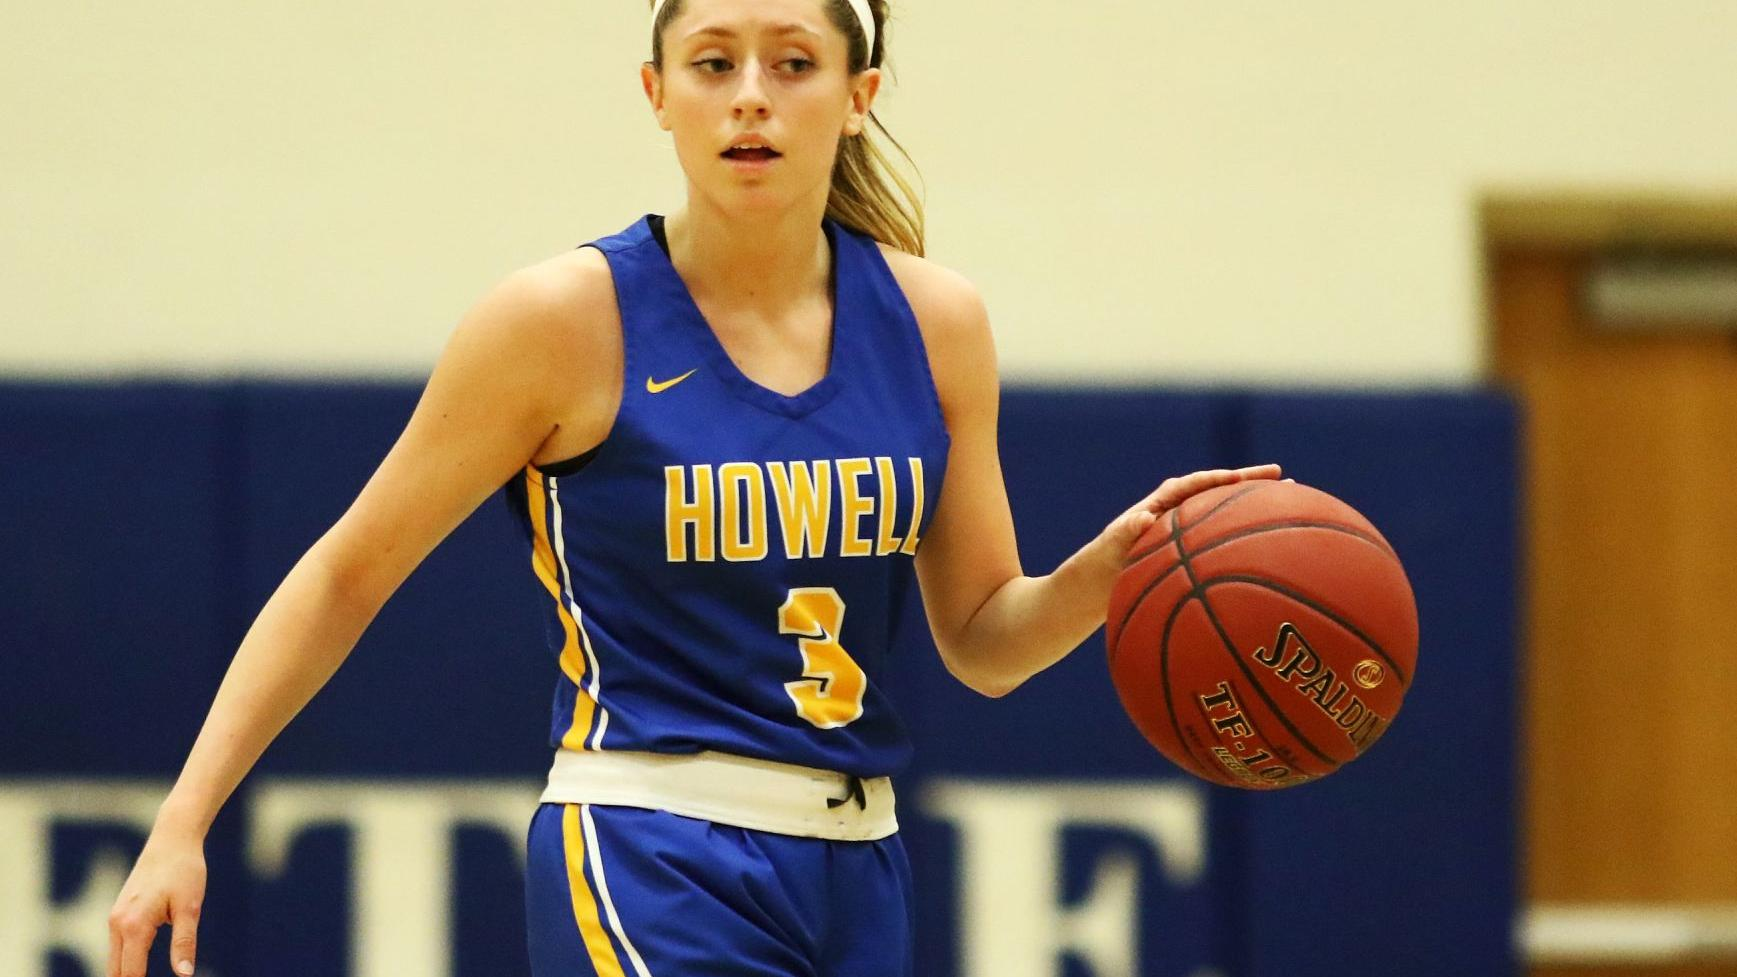 Francis Howell outlasts Fort Zumwalt West to claim another close win